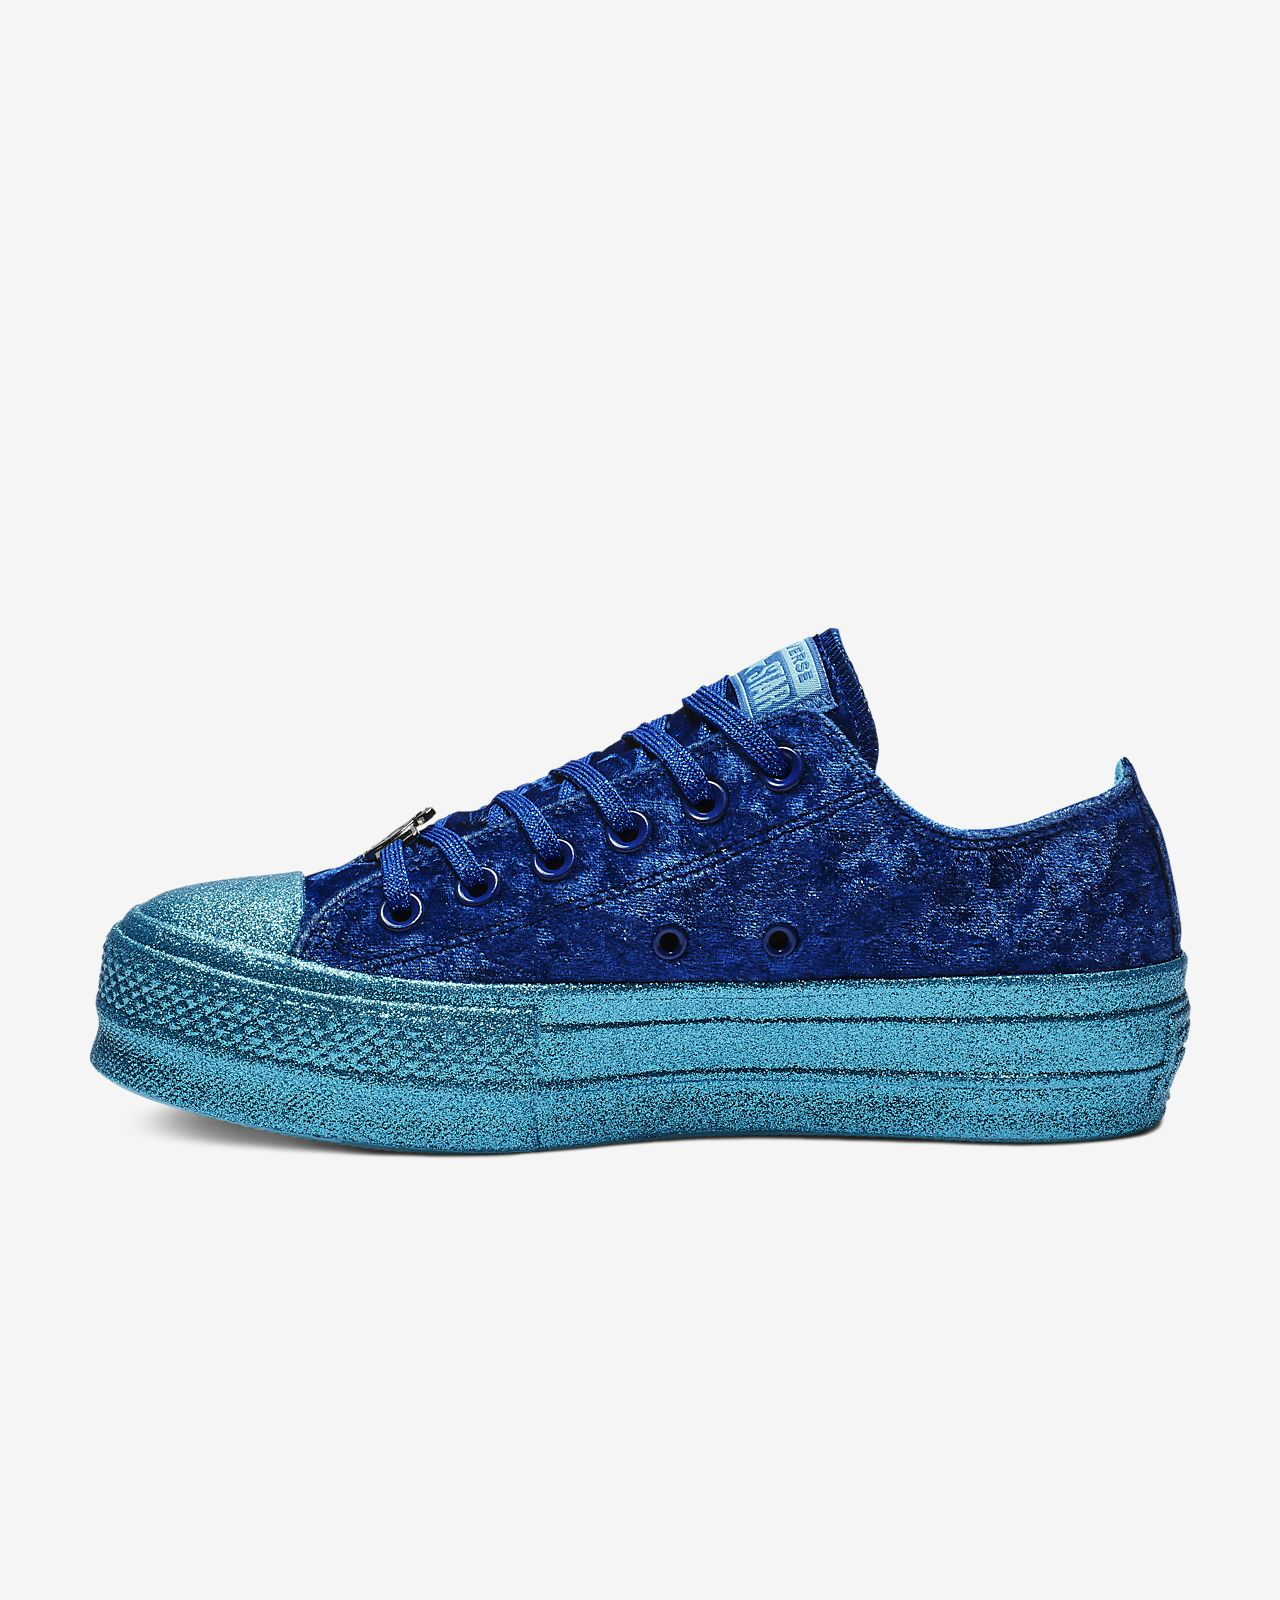 converse turquoise sneakers women